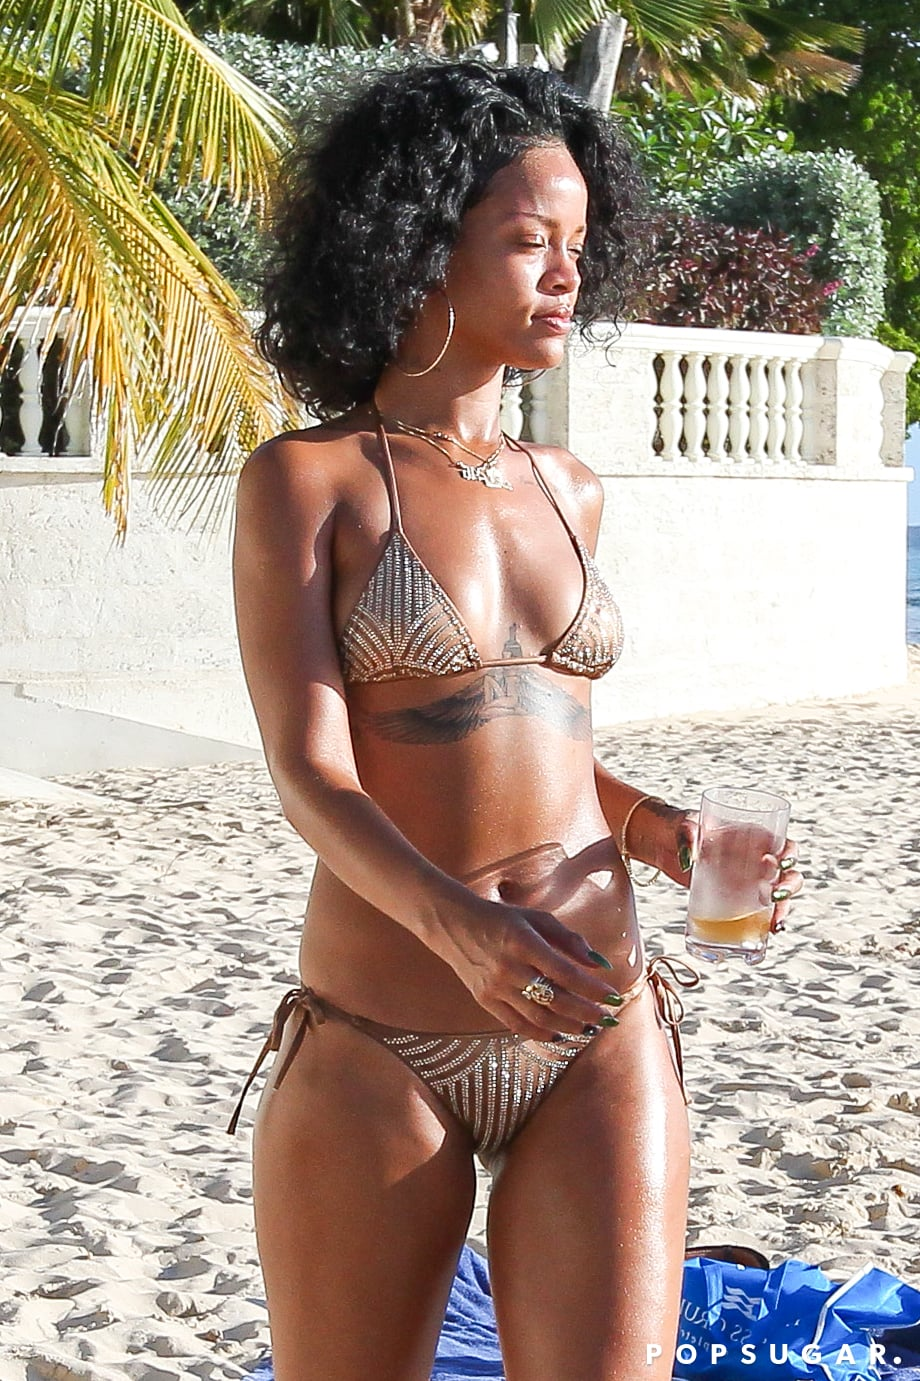 Rihanna wore her bikini in Barbados.